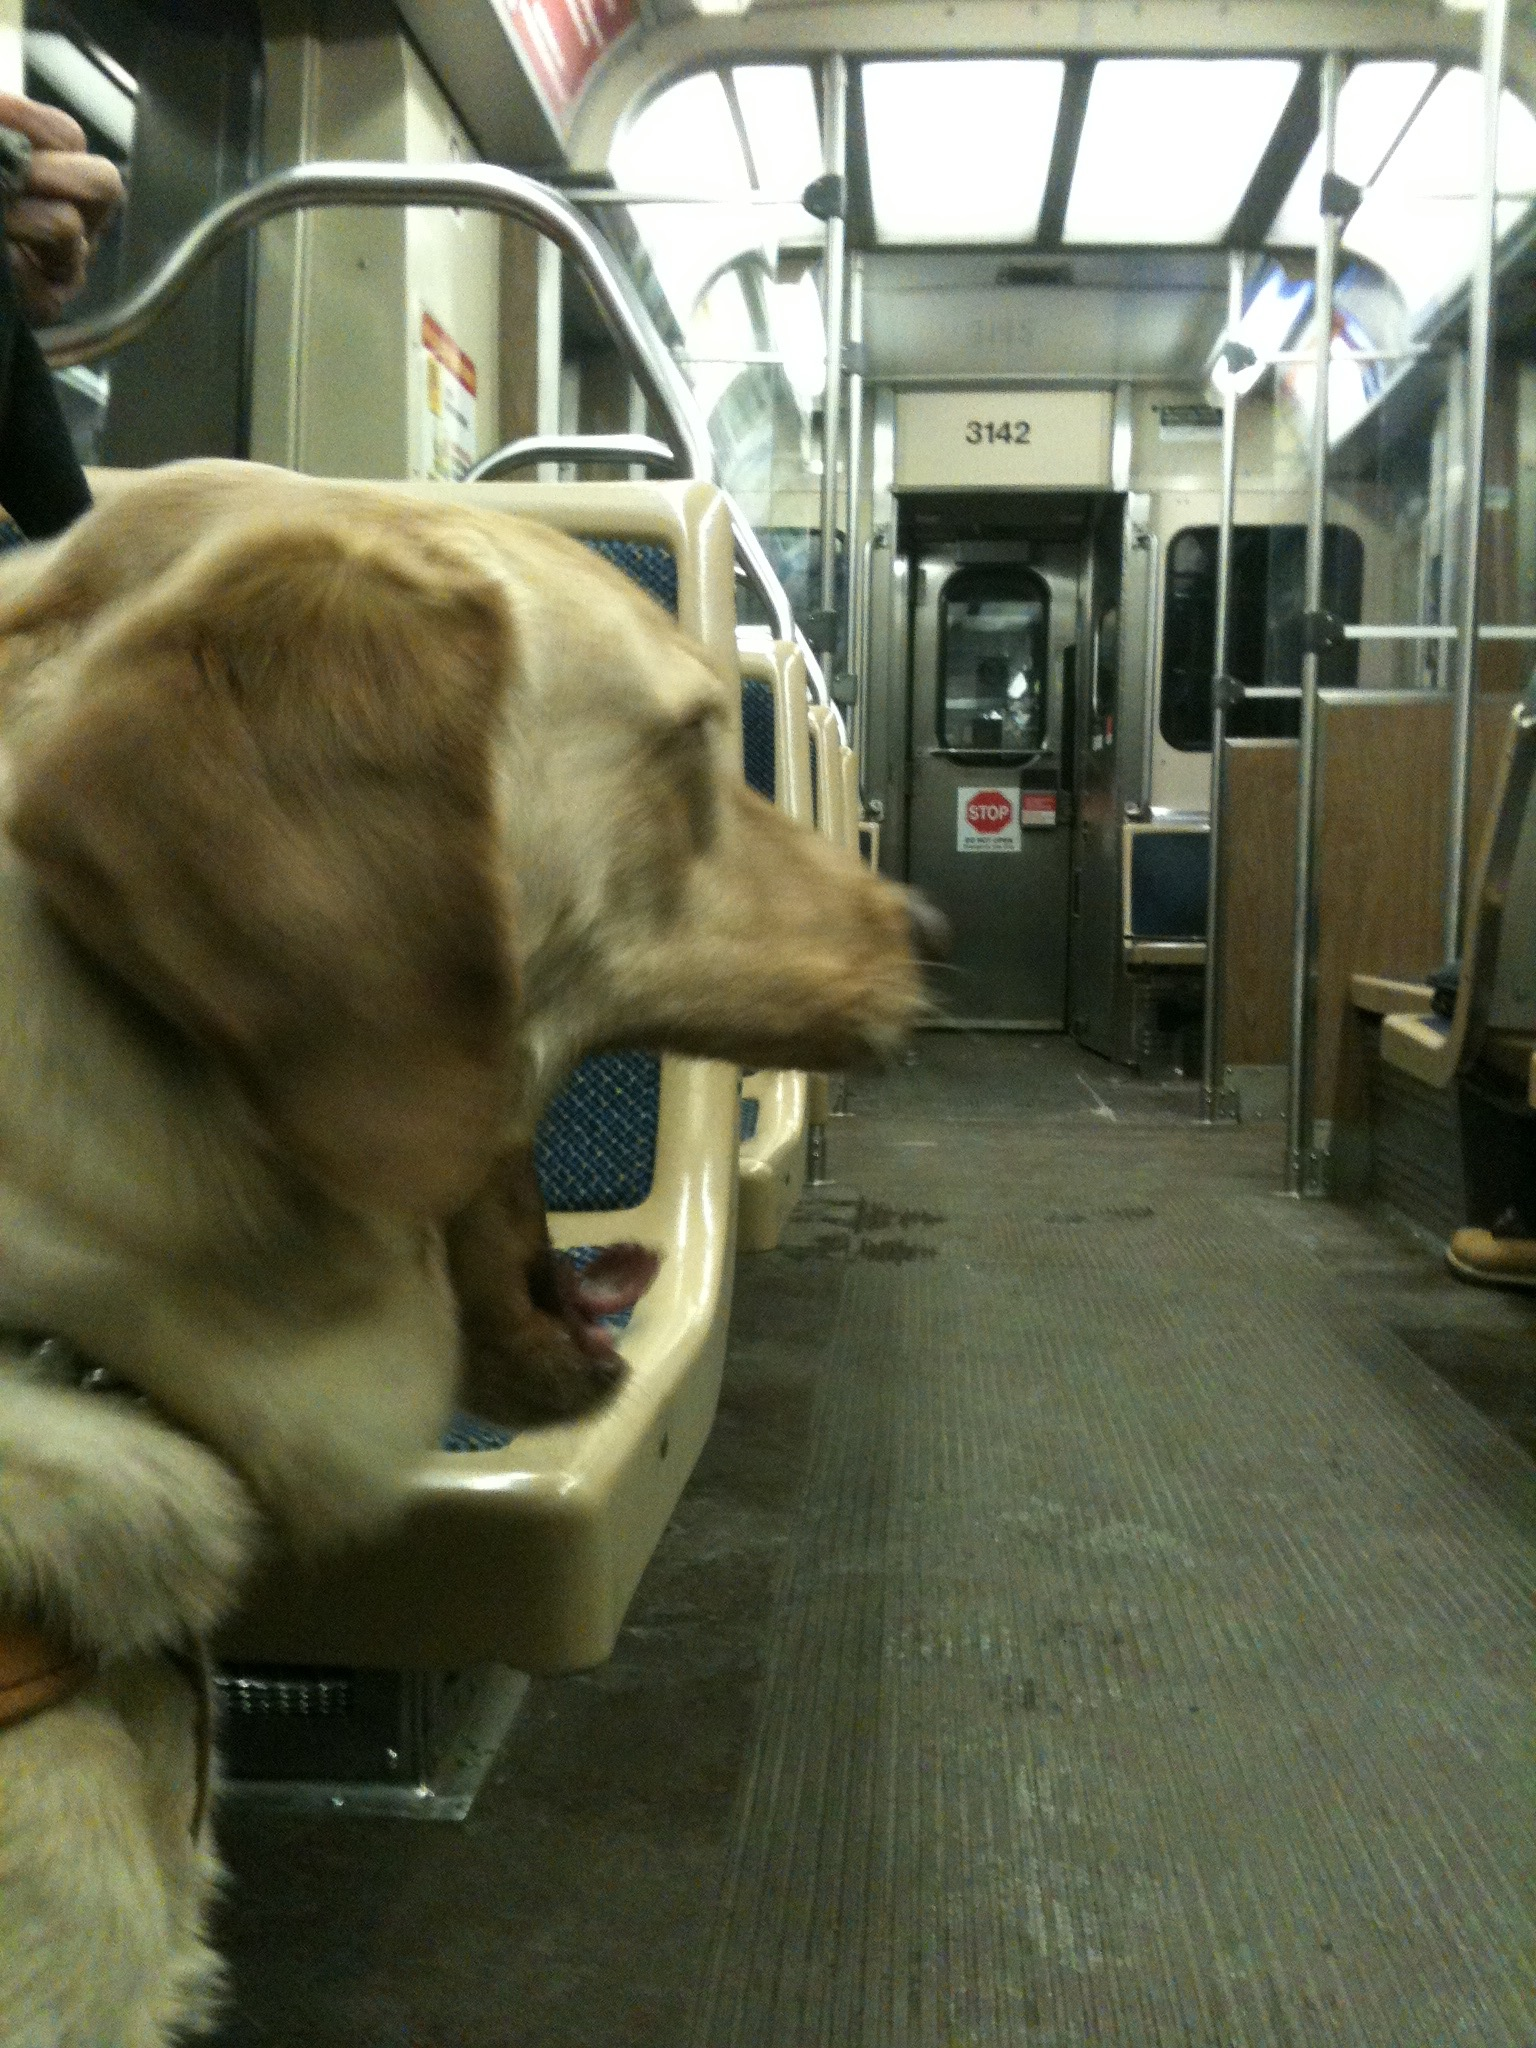 Thanks to the ADA, riding a train is a yawn for Whitney.